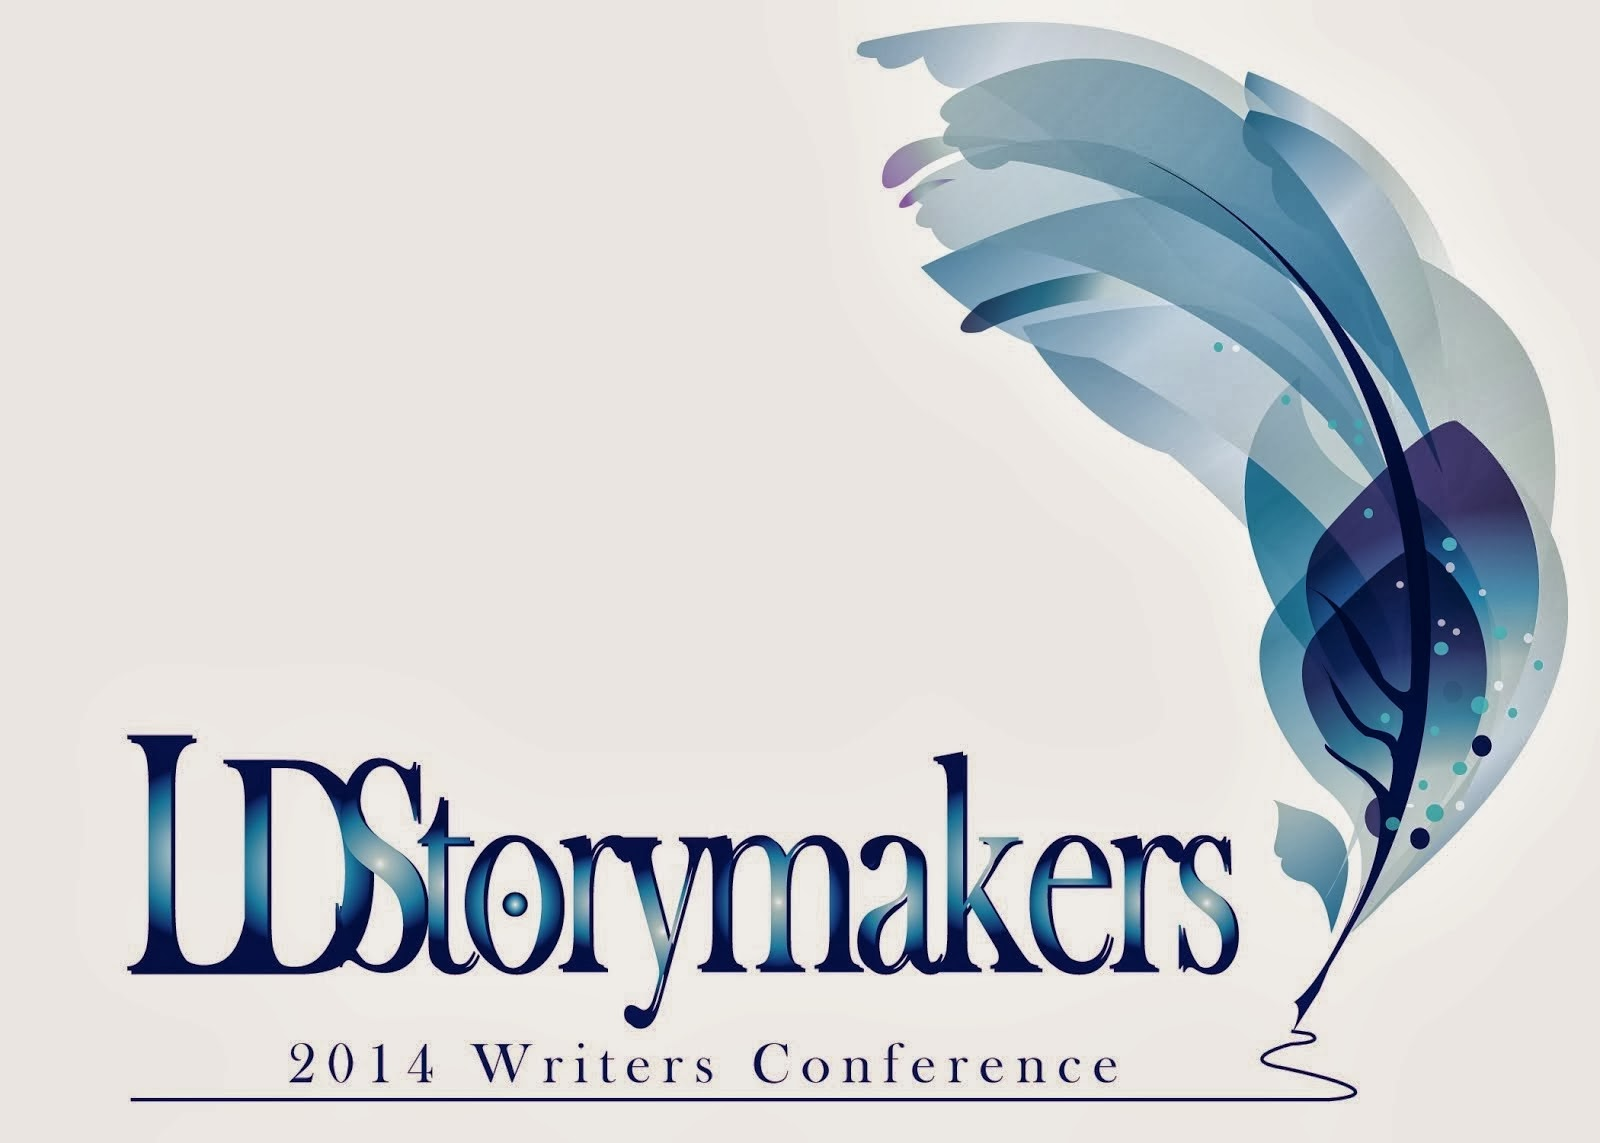 LDStorymakers Conference